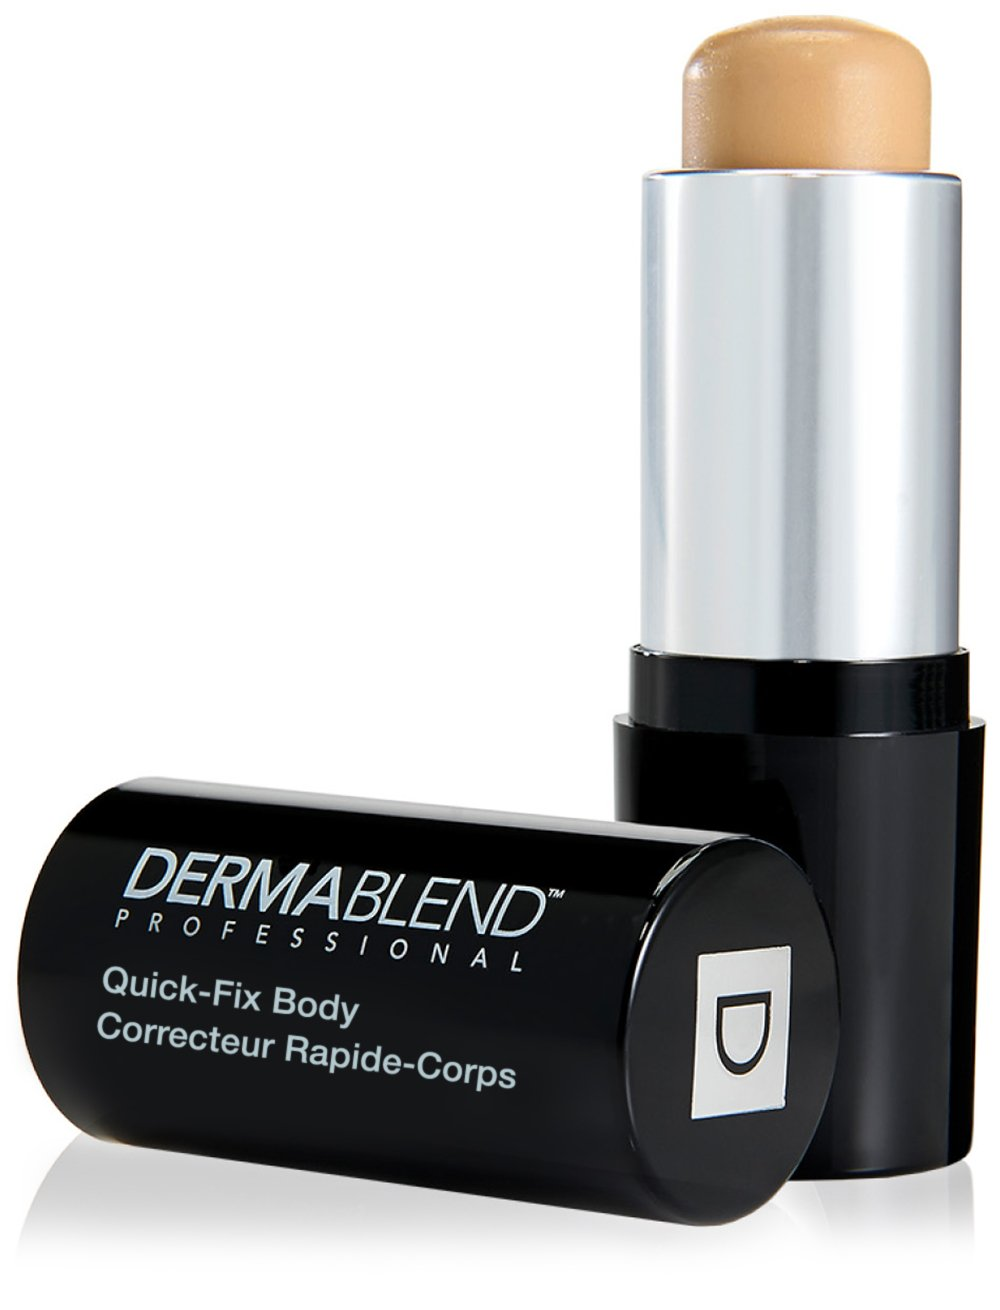 Dermablend Quick-Fix Body Makeup Full Coverage Foundation Stick, 30N Sand, 0.42 Oz.